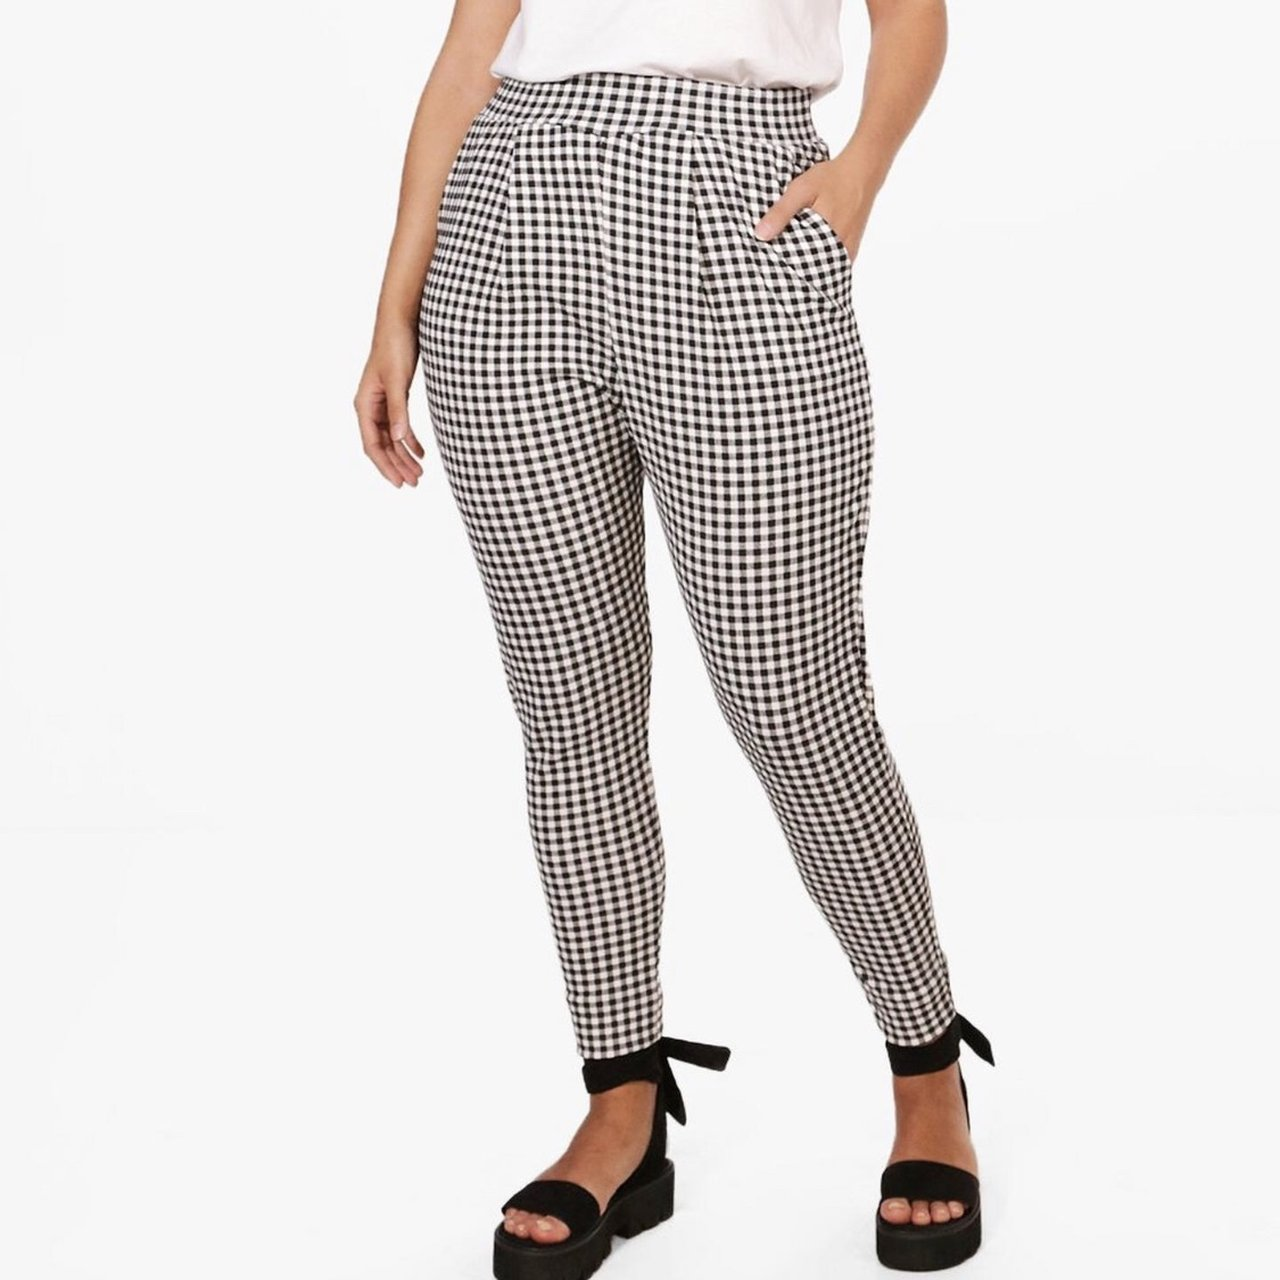 faba875871888 Plus size gingham pants boohoo size 14 used washed clean 🖤 - Depop